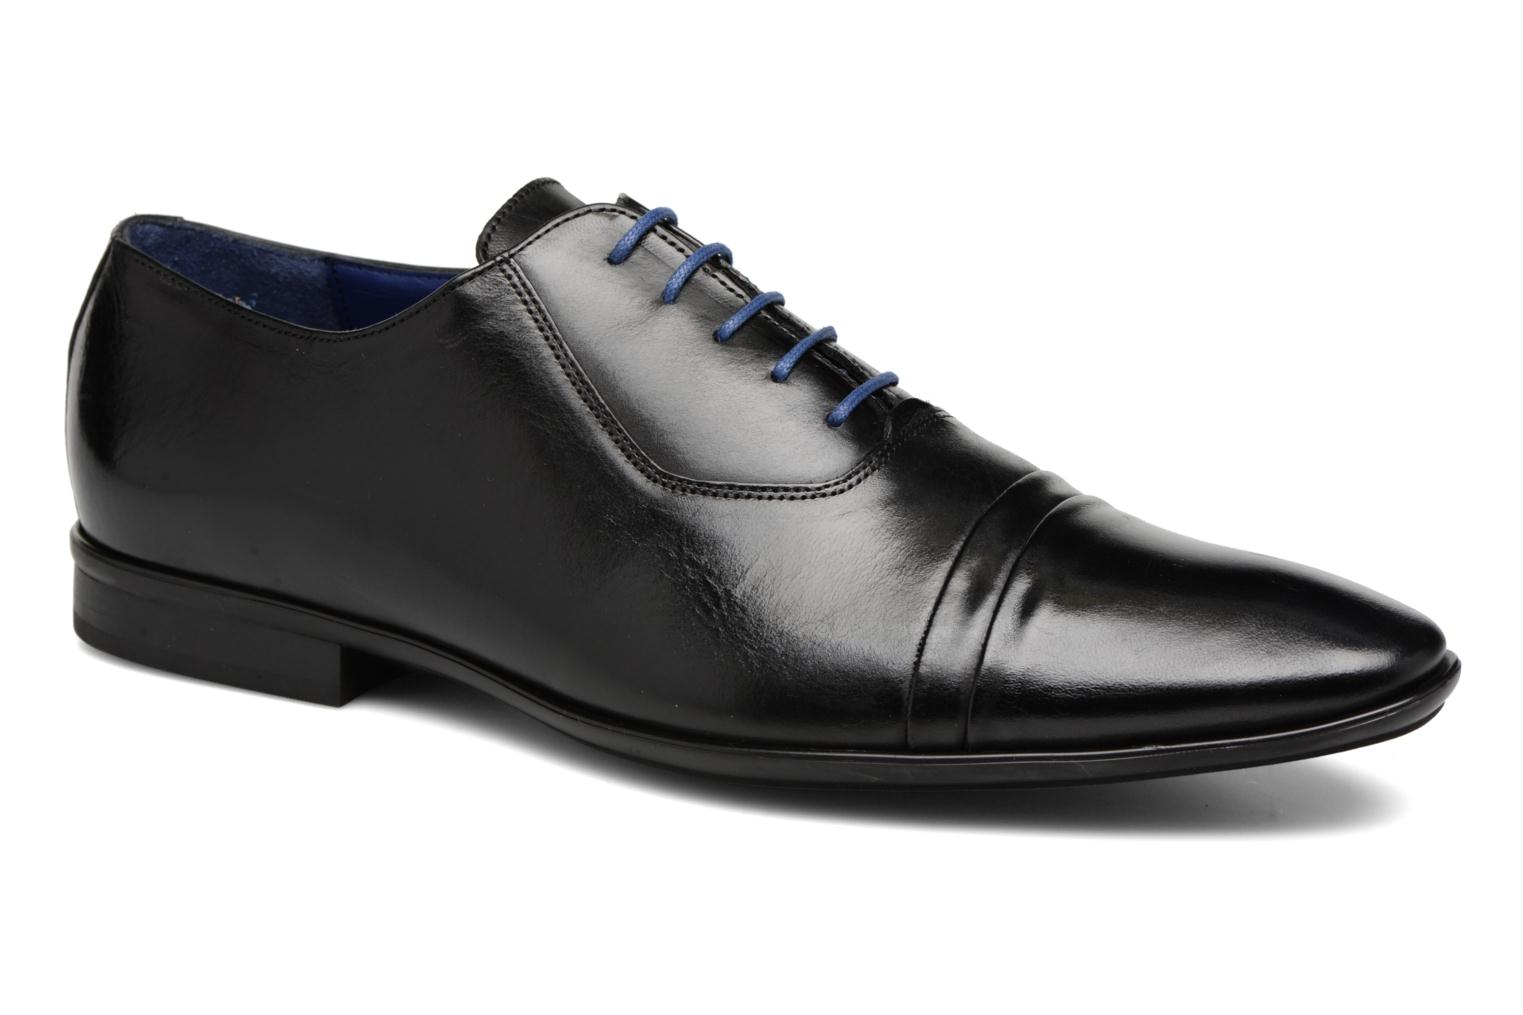 Marques Chaussure luxe homme Azzaro homme Afelton Noir